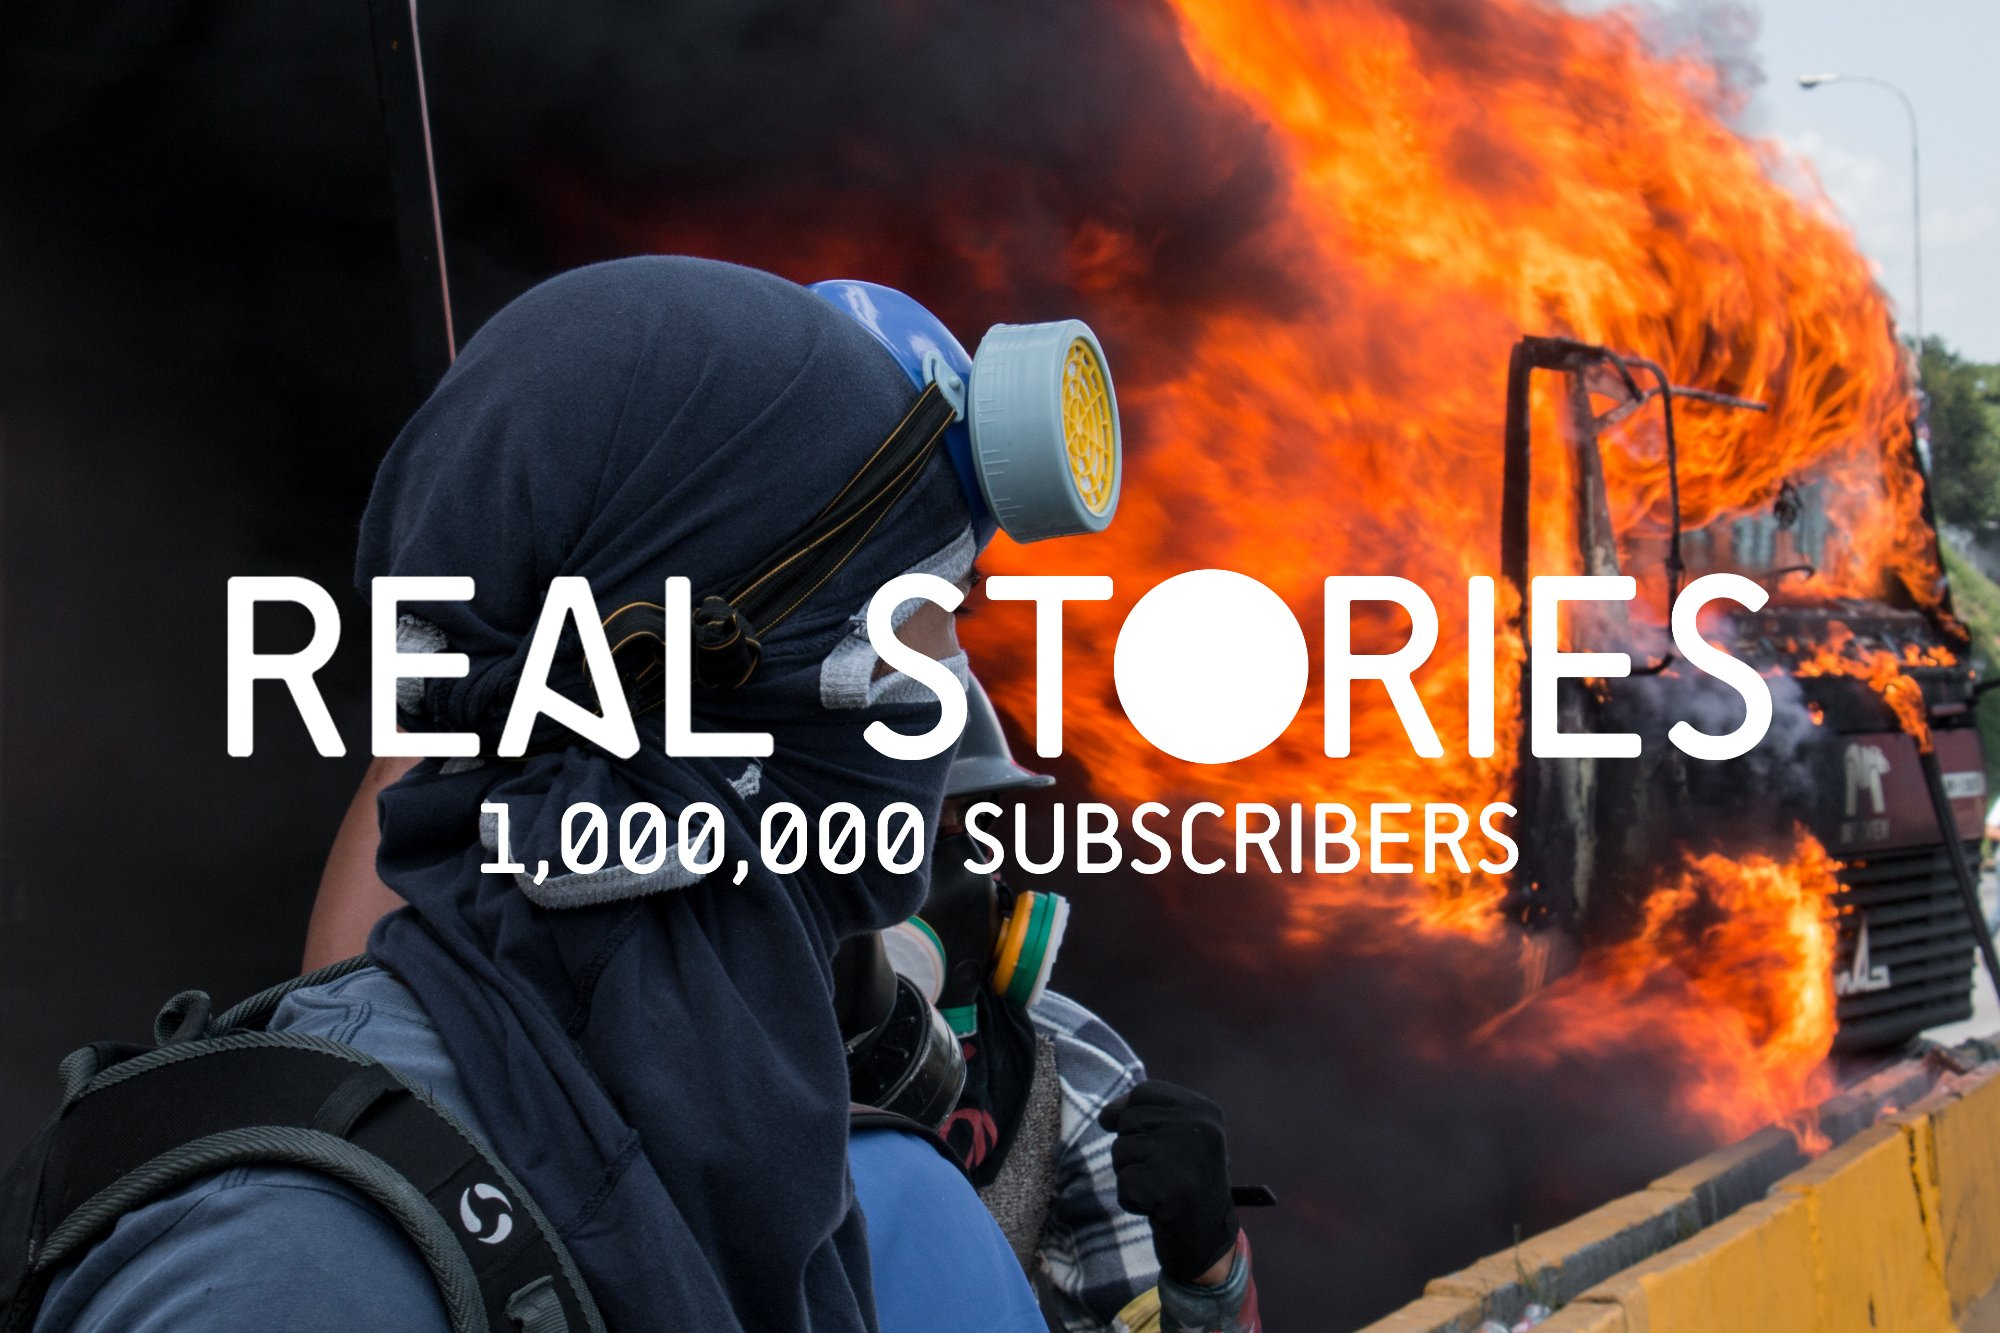 real stories one million subscribers documentary channel youtube